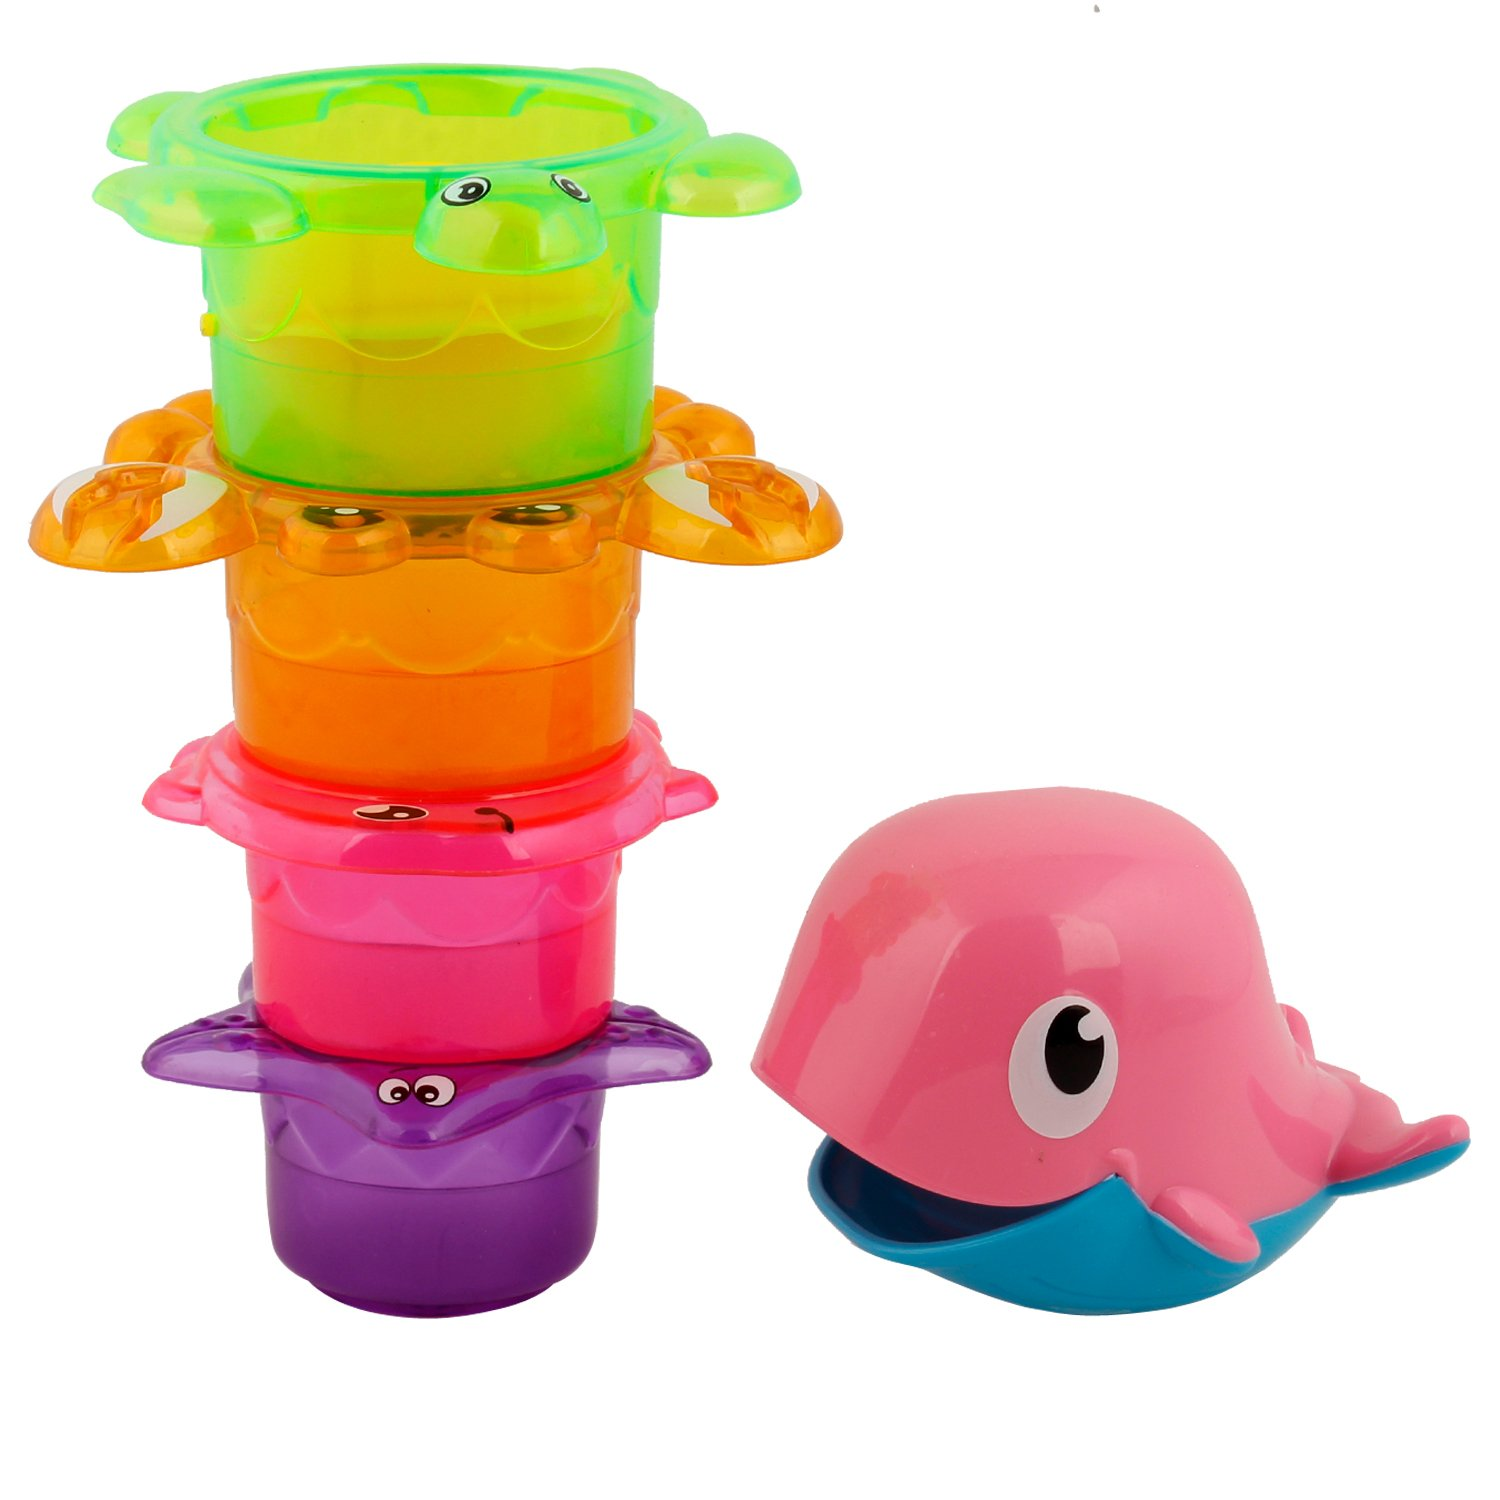 Marine Piles Cup Baby Bath Toy for Kids – Set of 5